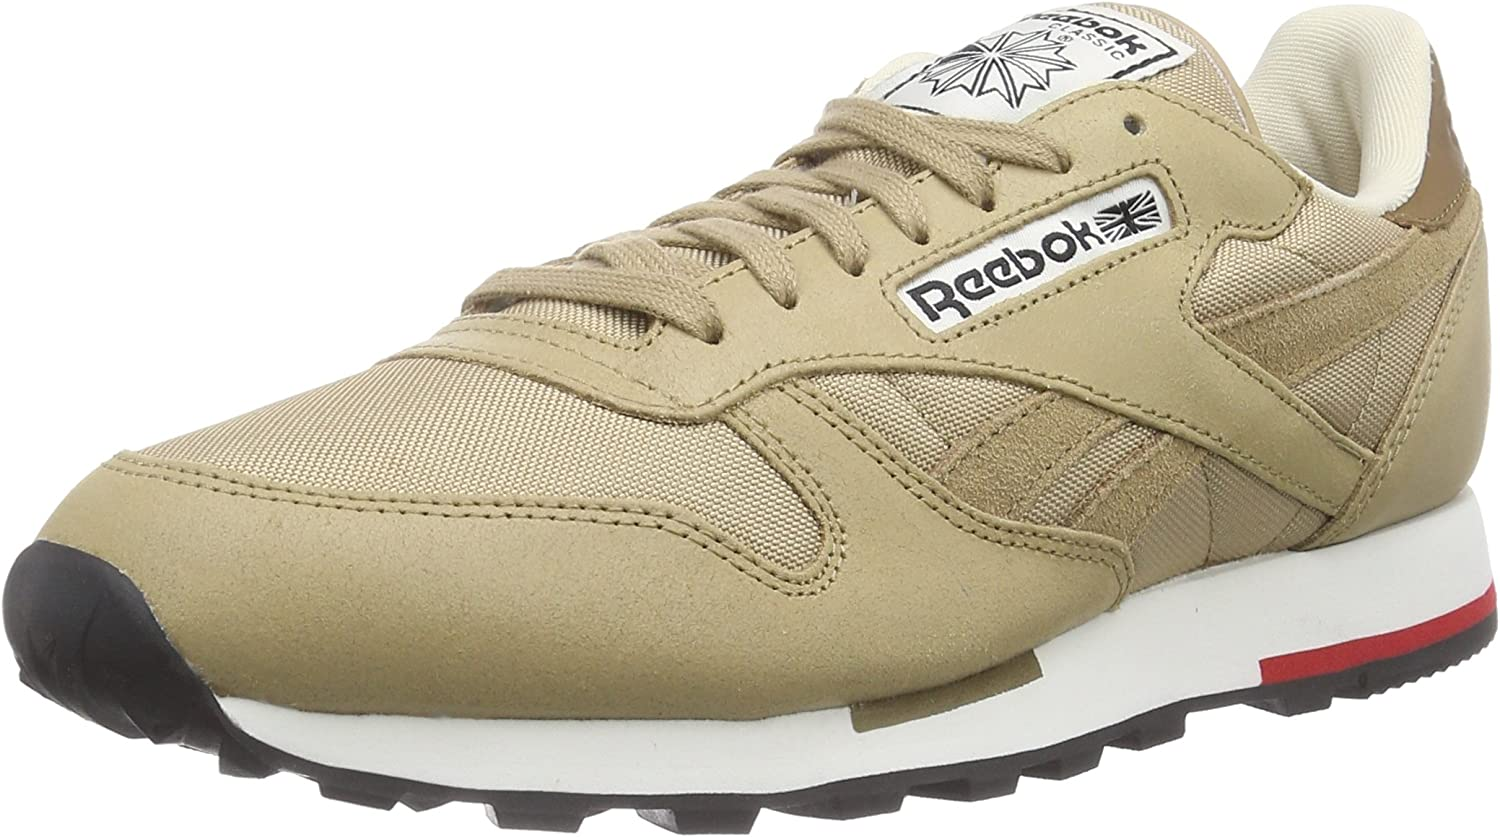 Reebok Classic Leather Casual, Men's Low-Top Sneakers